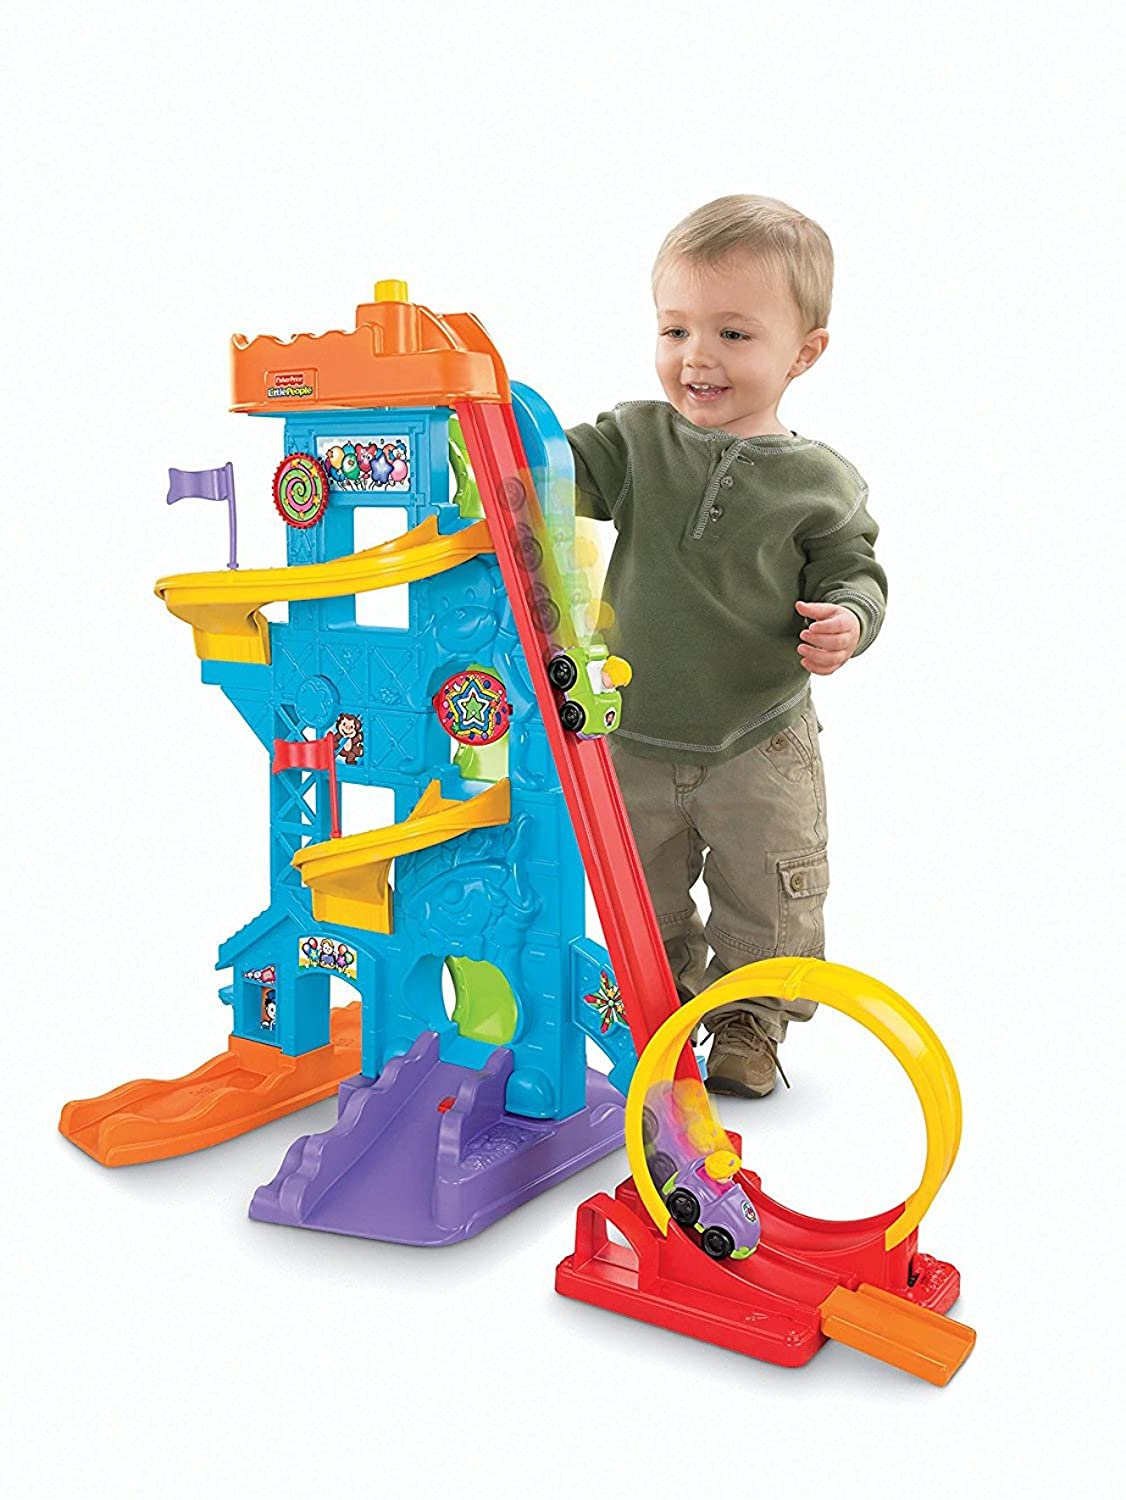 Toys And Gifts : Best gifts for year old boys in itsy bitsy fun